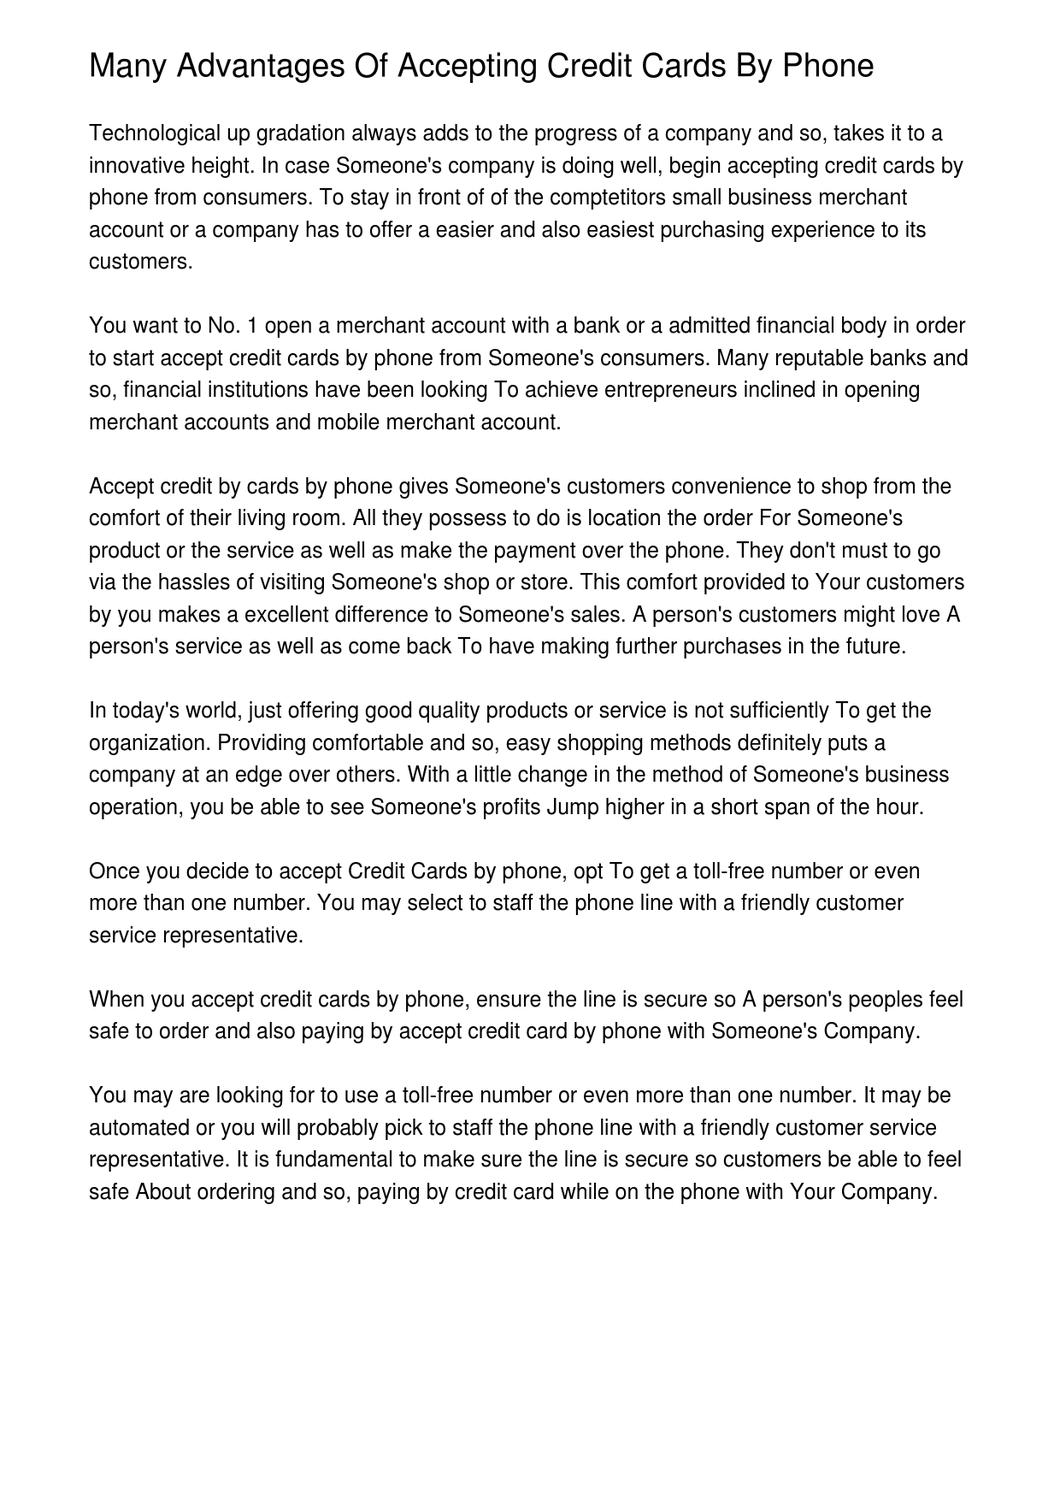 Many advantages of accepting credit cards by phone by clay koenig many advantages of accepting credit cards by phone by clay koenig issuu reheart Choice Image